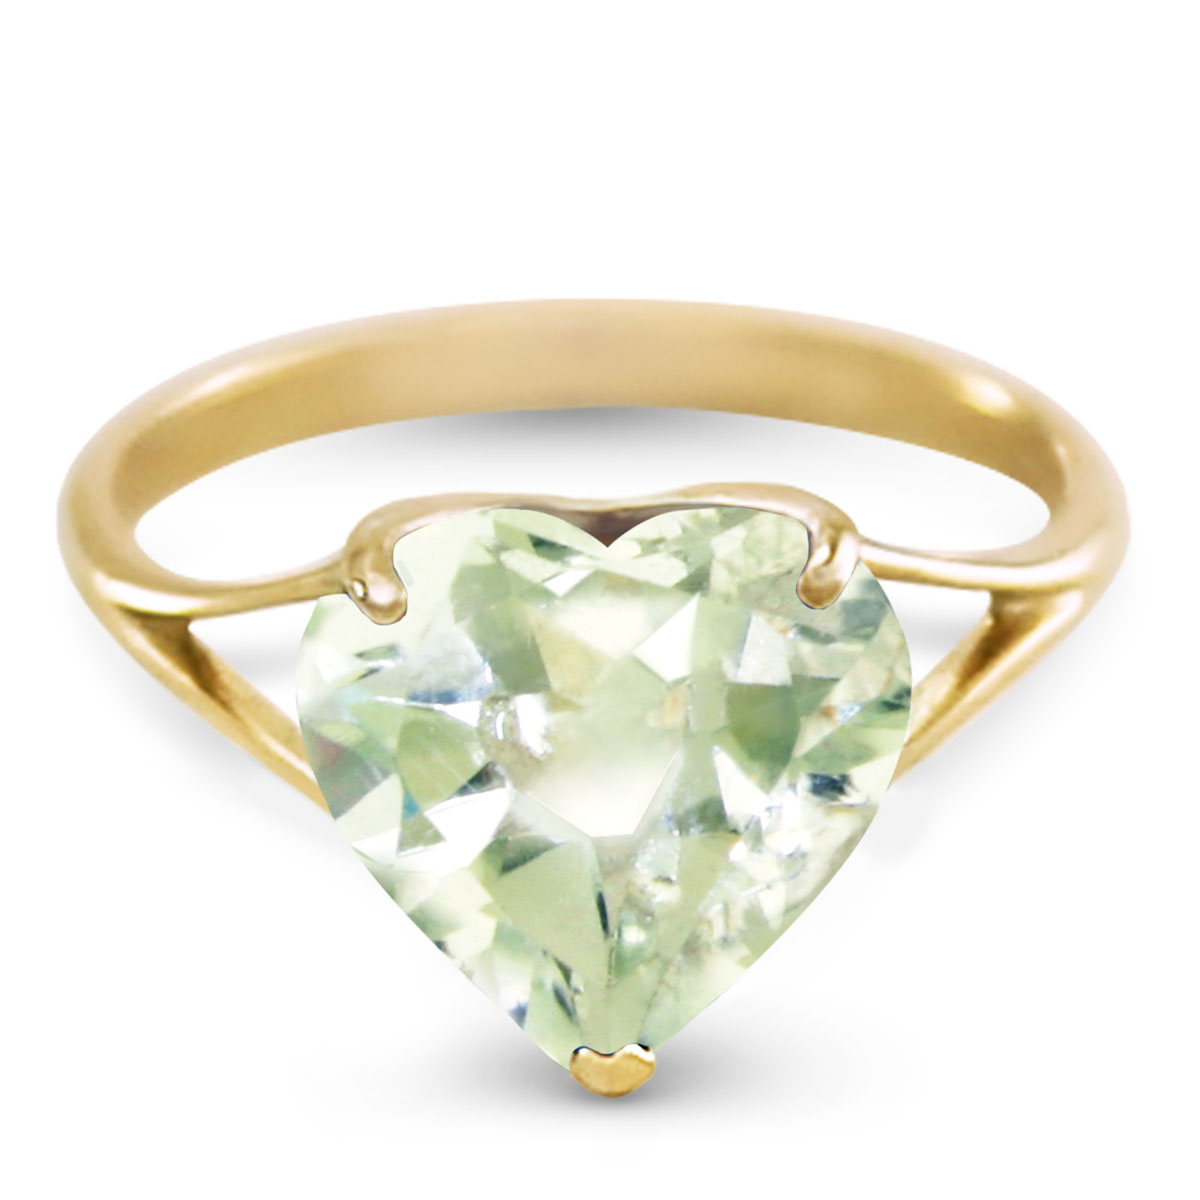 Green Amethyst Large Heart Ring 3.1 ct in 9ct Gold